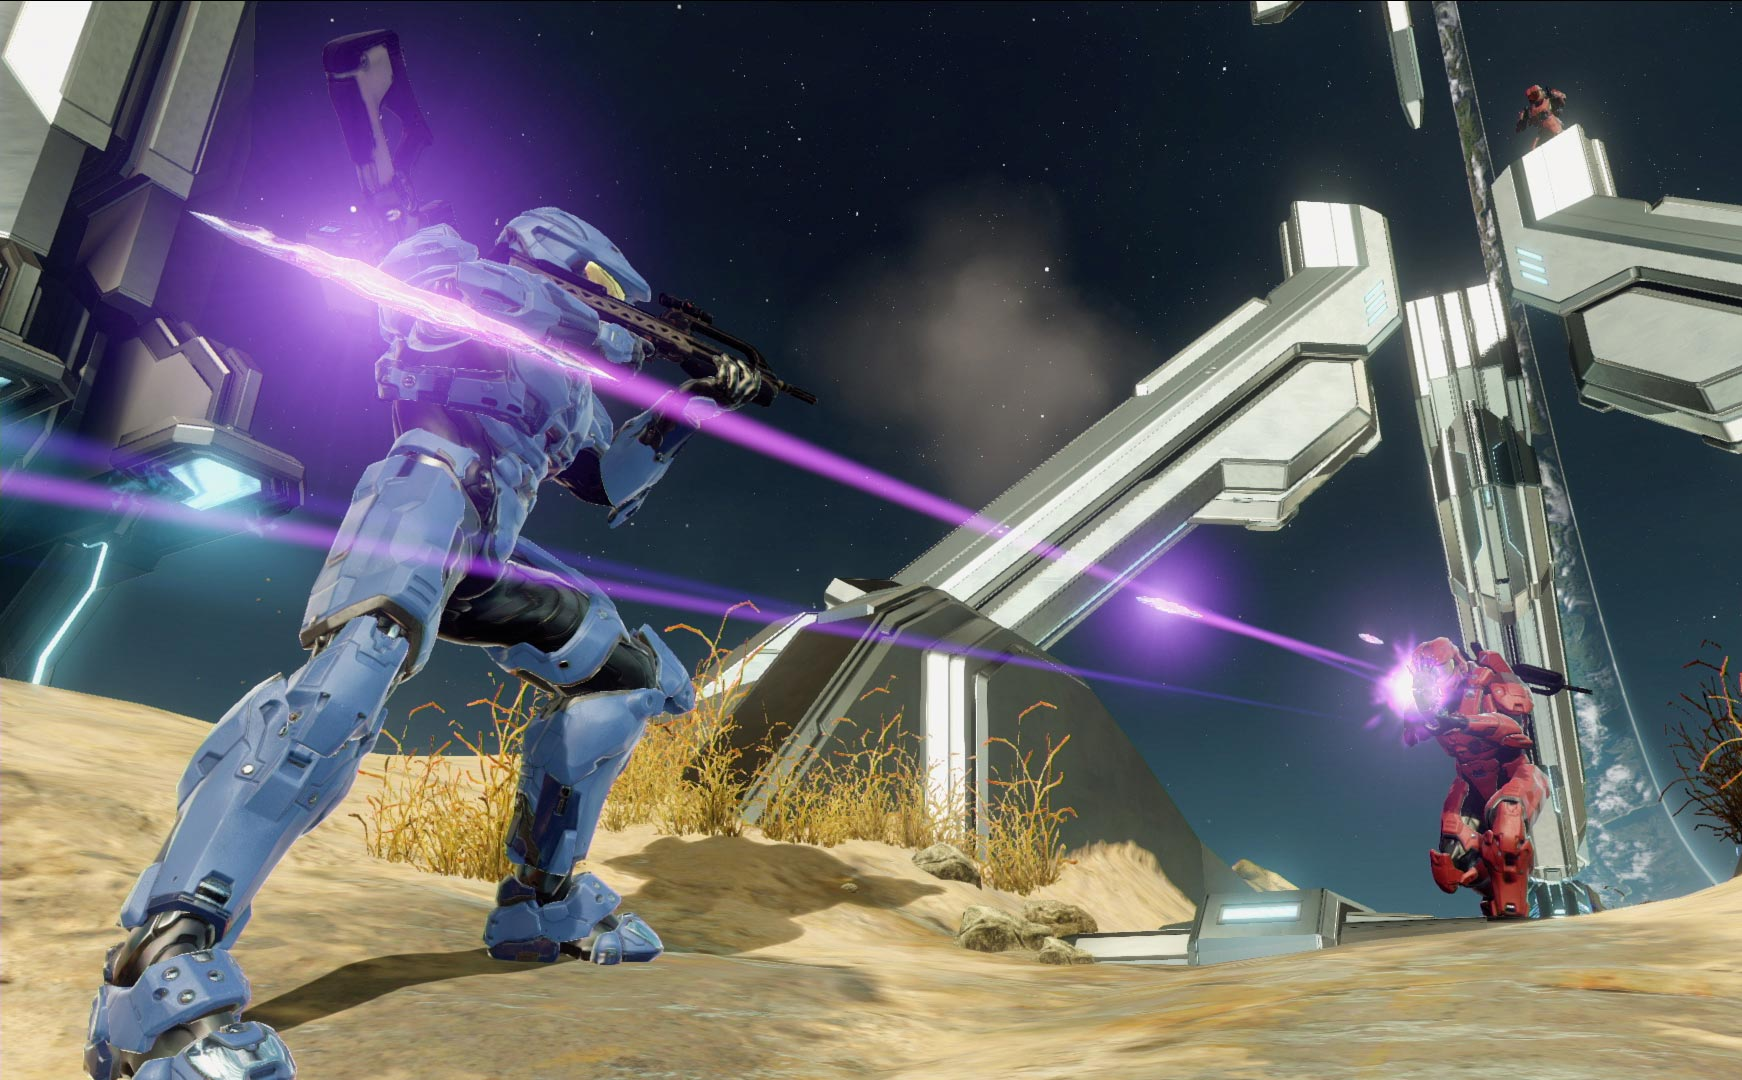 3 Years Later, The People Behind Halo: The Master Chief Collection Are Still Fixing Things